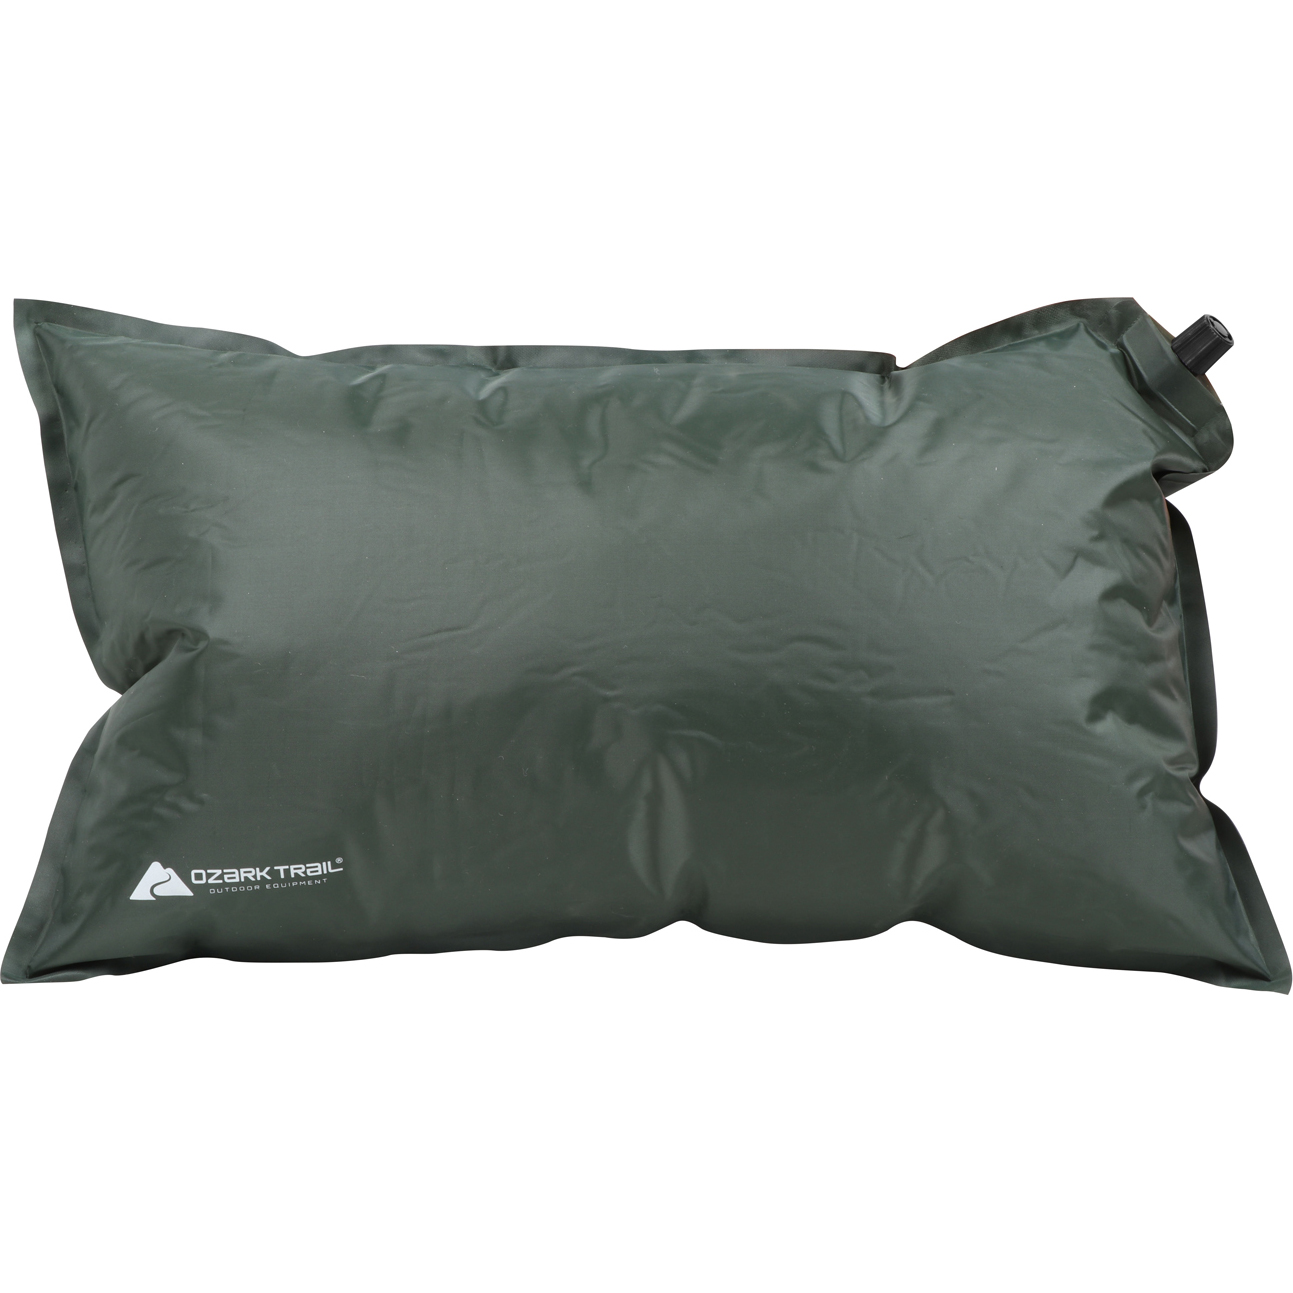 Ozark Trail Self-Inflating Air Pillow